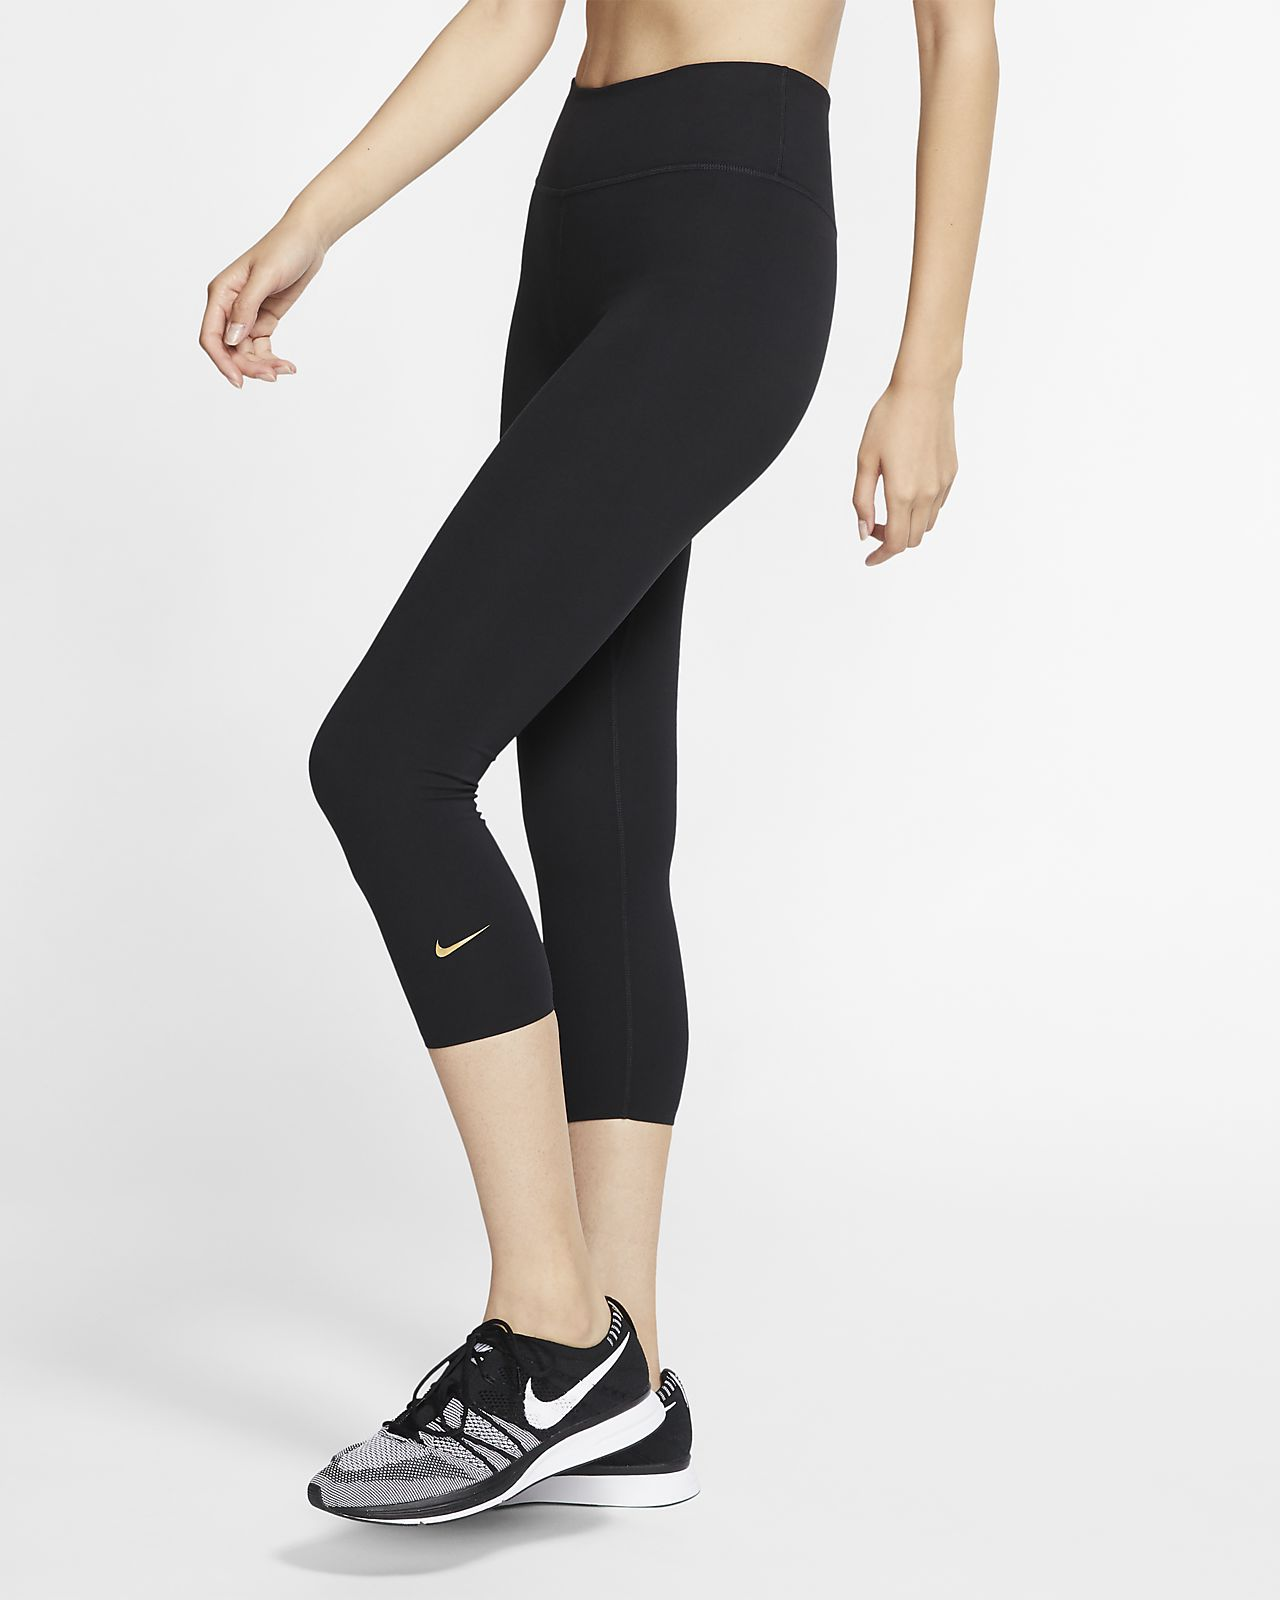 Pescadores para mujer Nike One Luxe